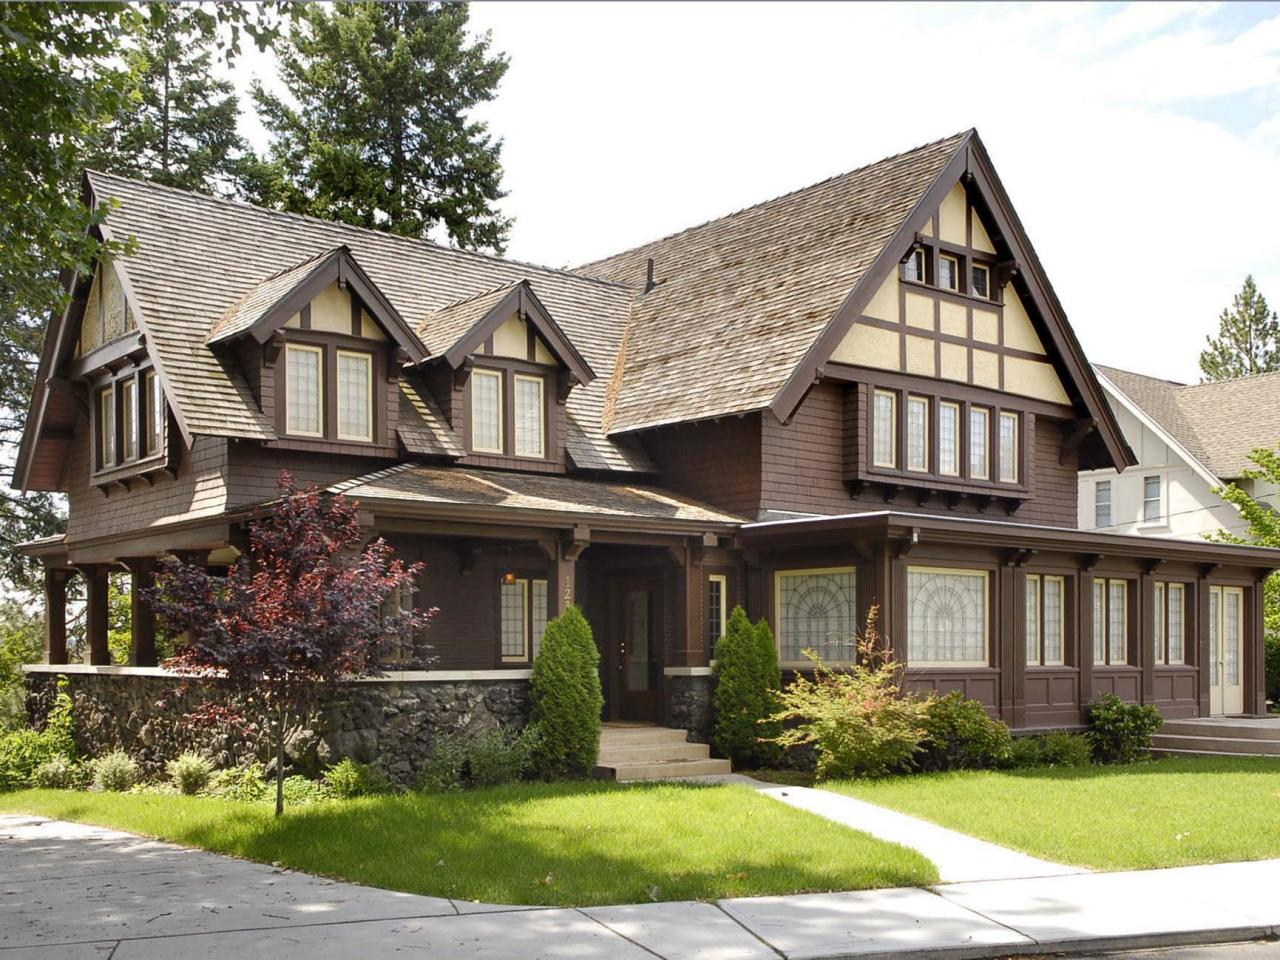 Tudor Revival Architecture